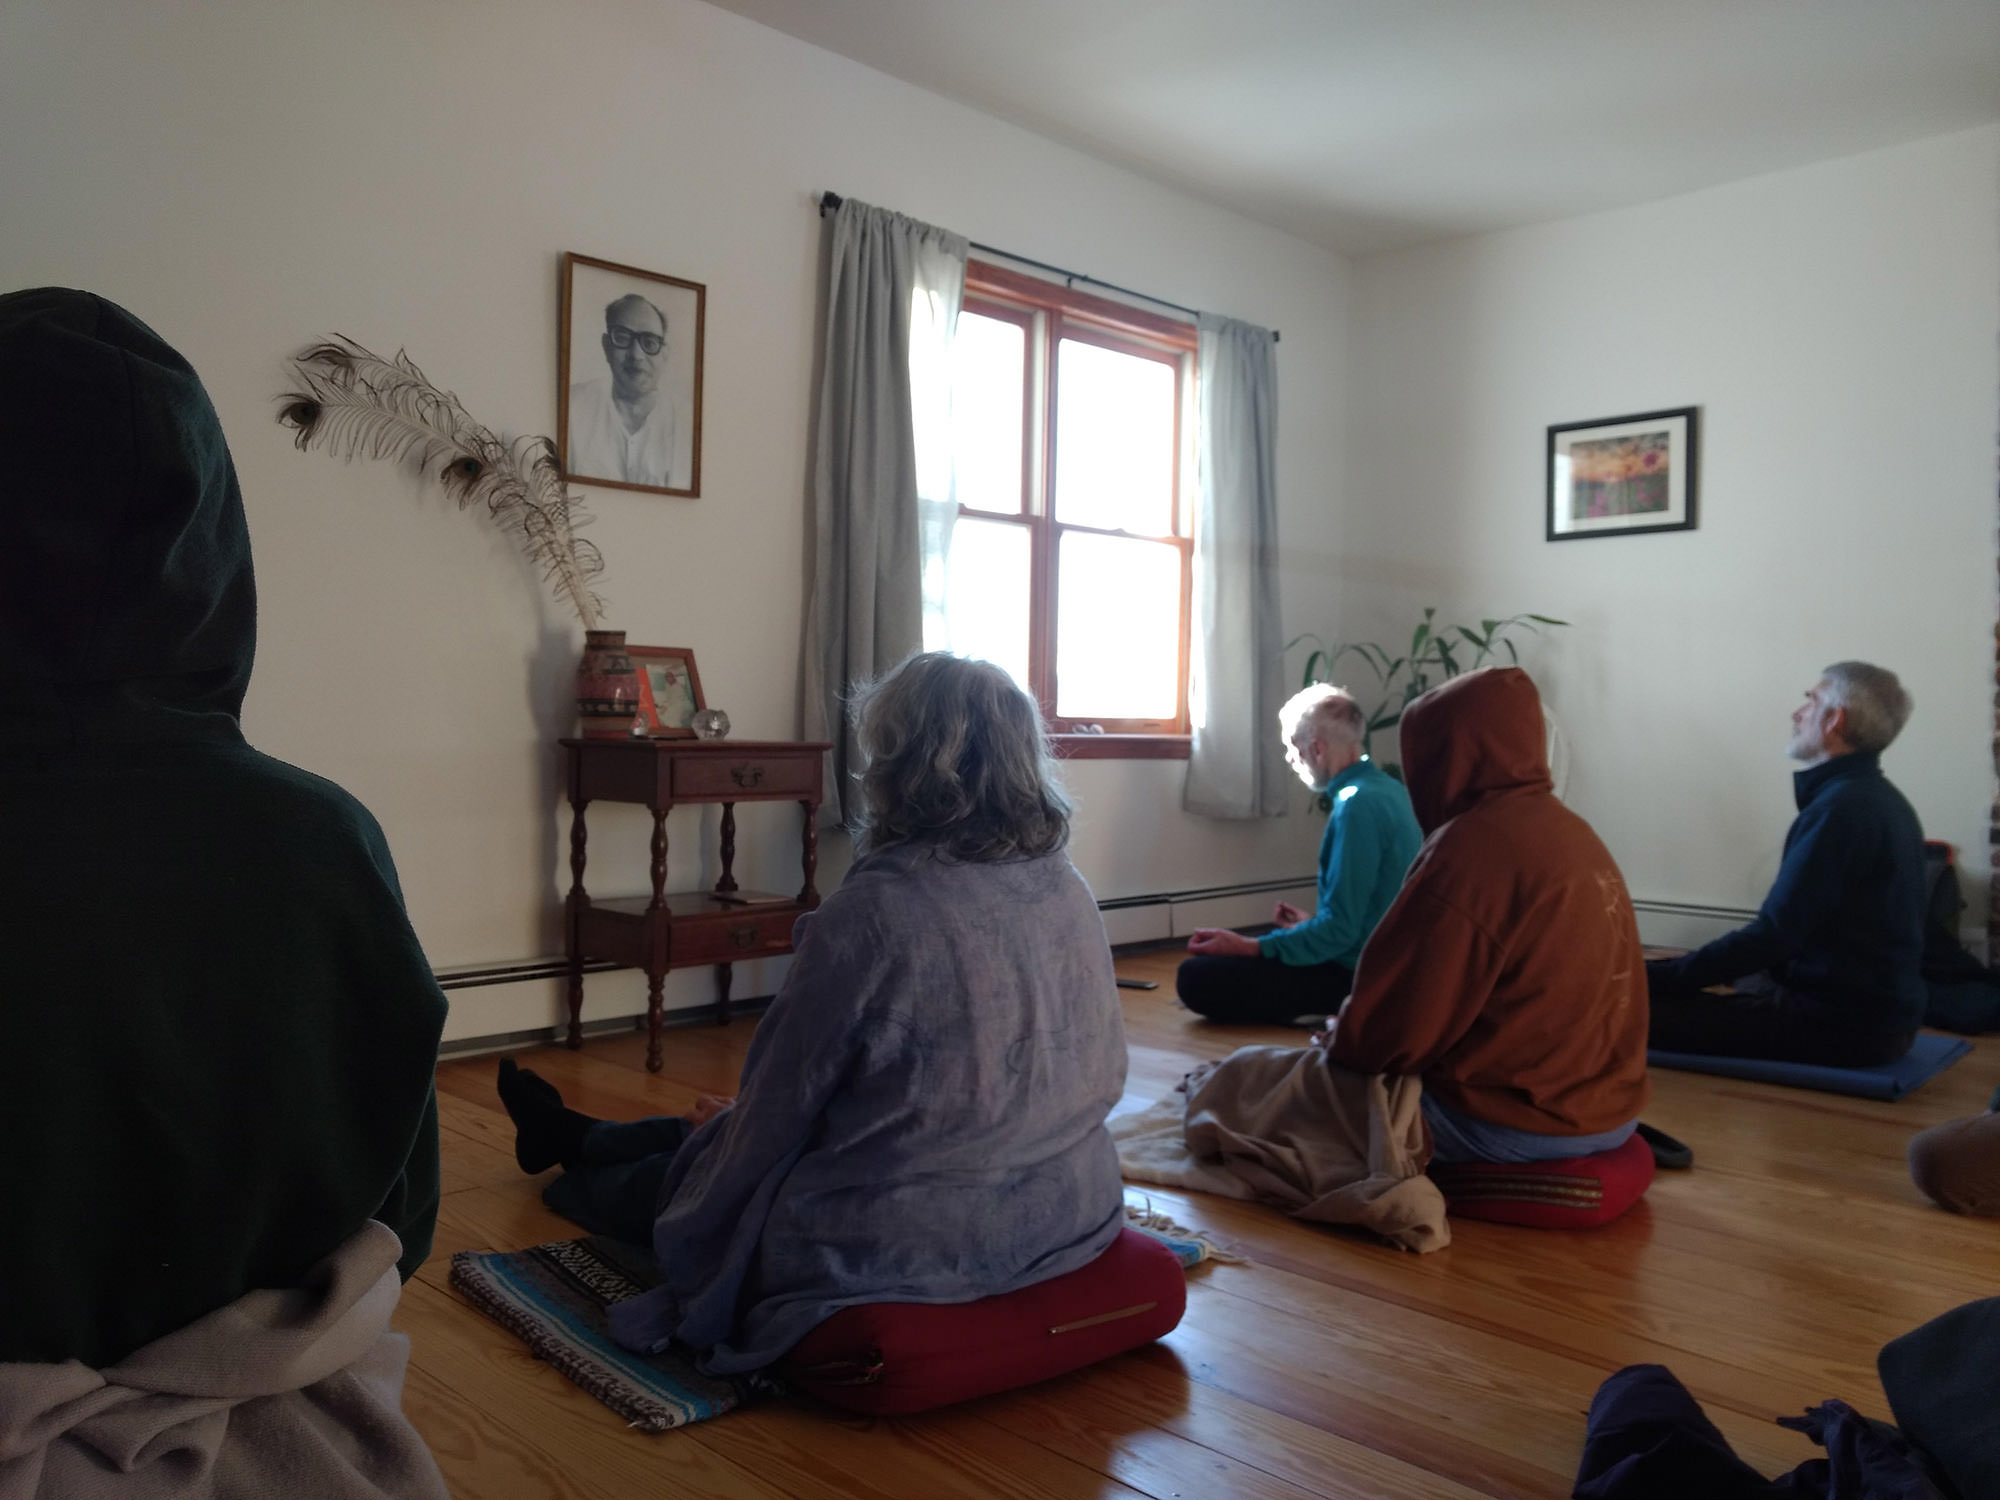 What you could Learn - You can learn a system of meditation from one of our teachers or you may practice your own if you already have one.